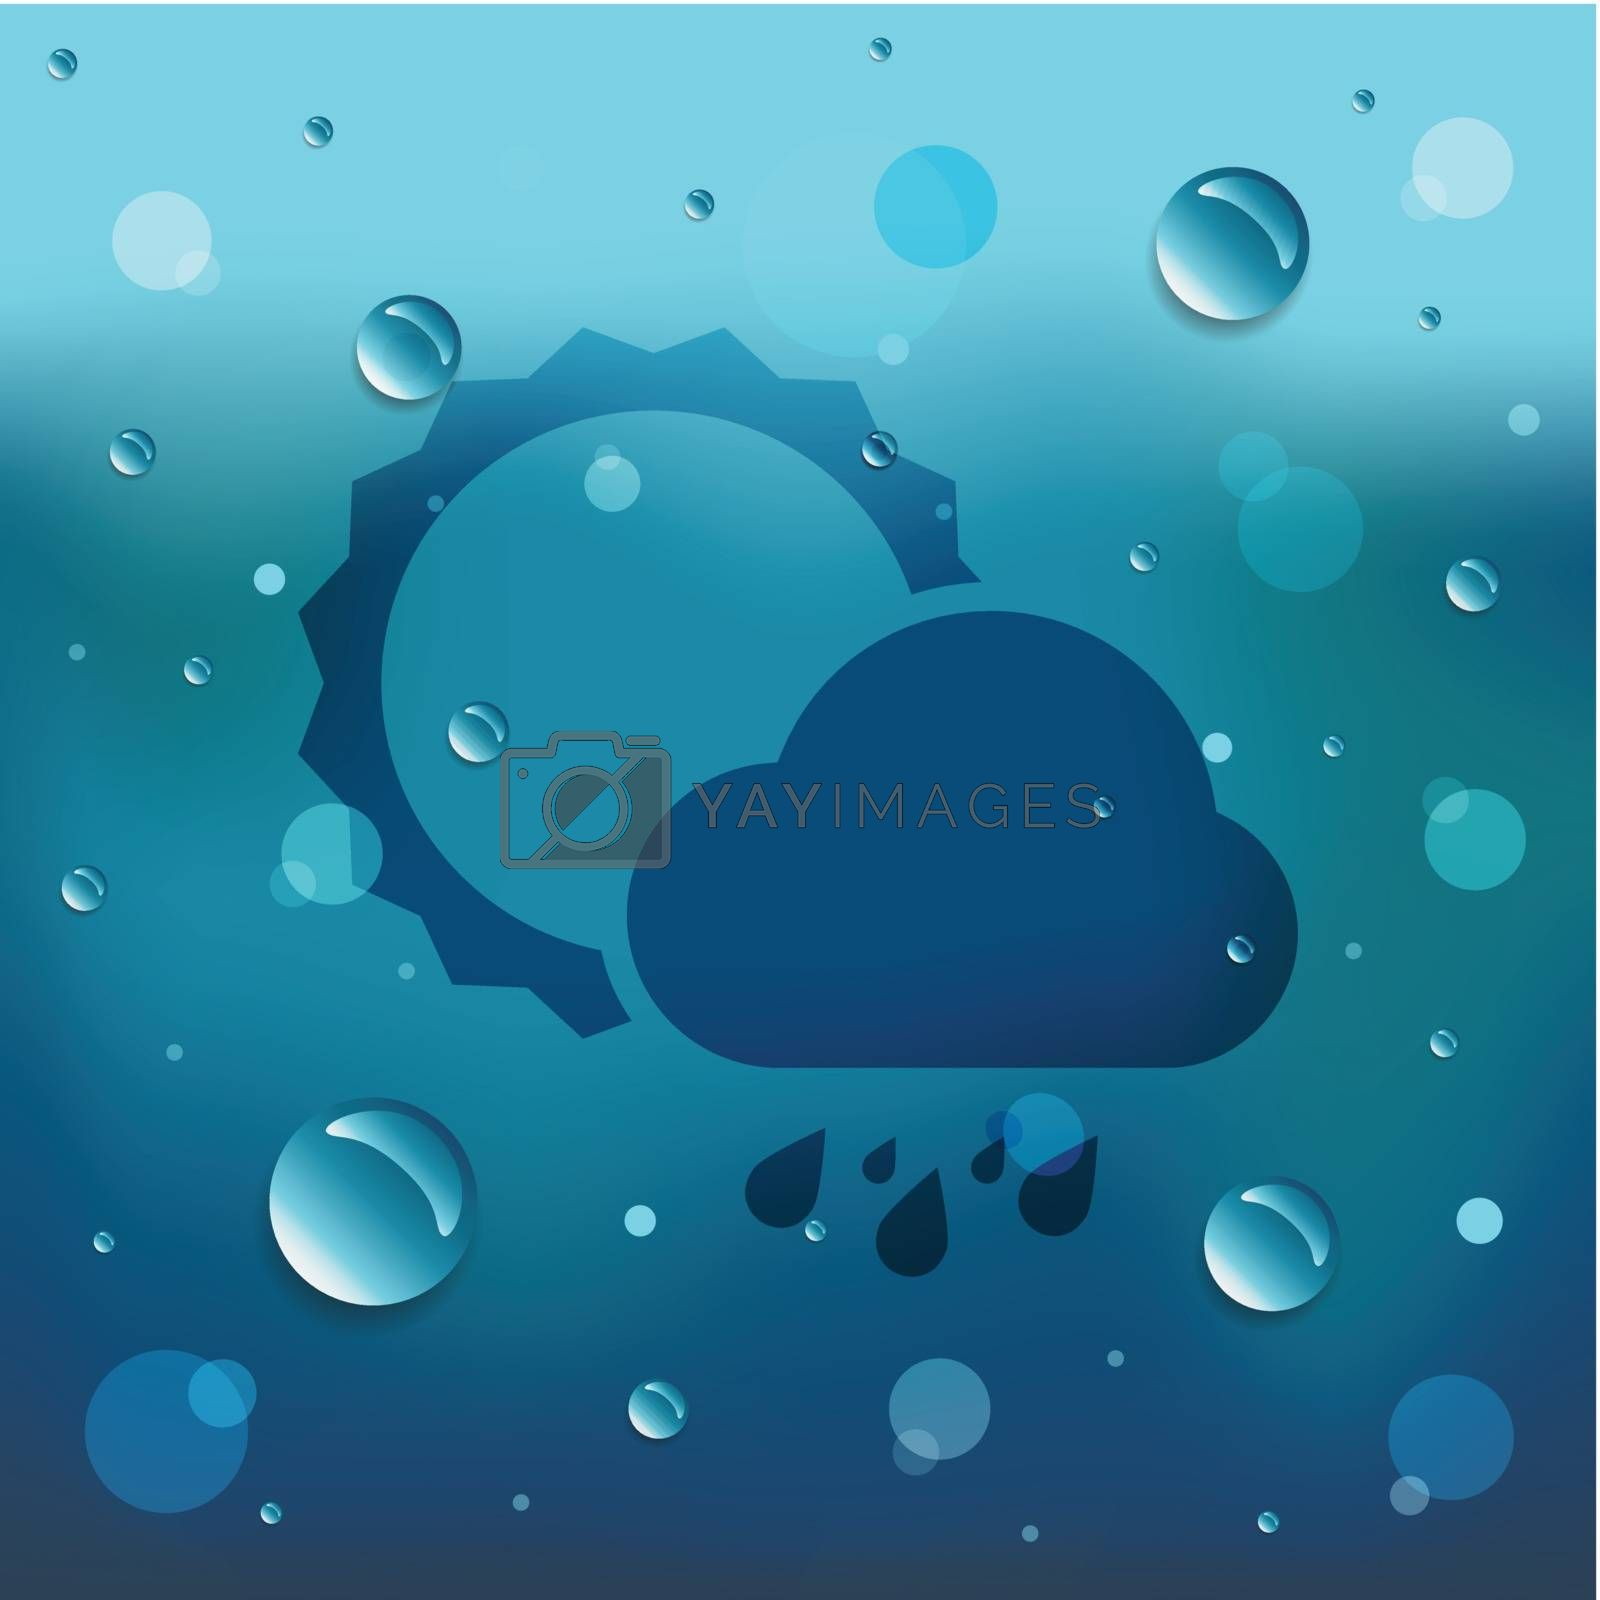 Sun and cloud icon on blue background with many water drop